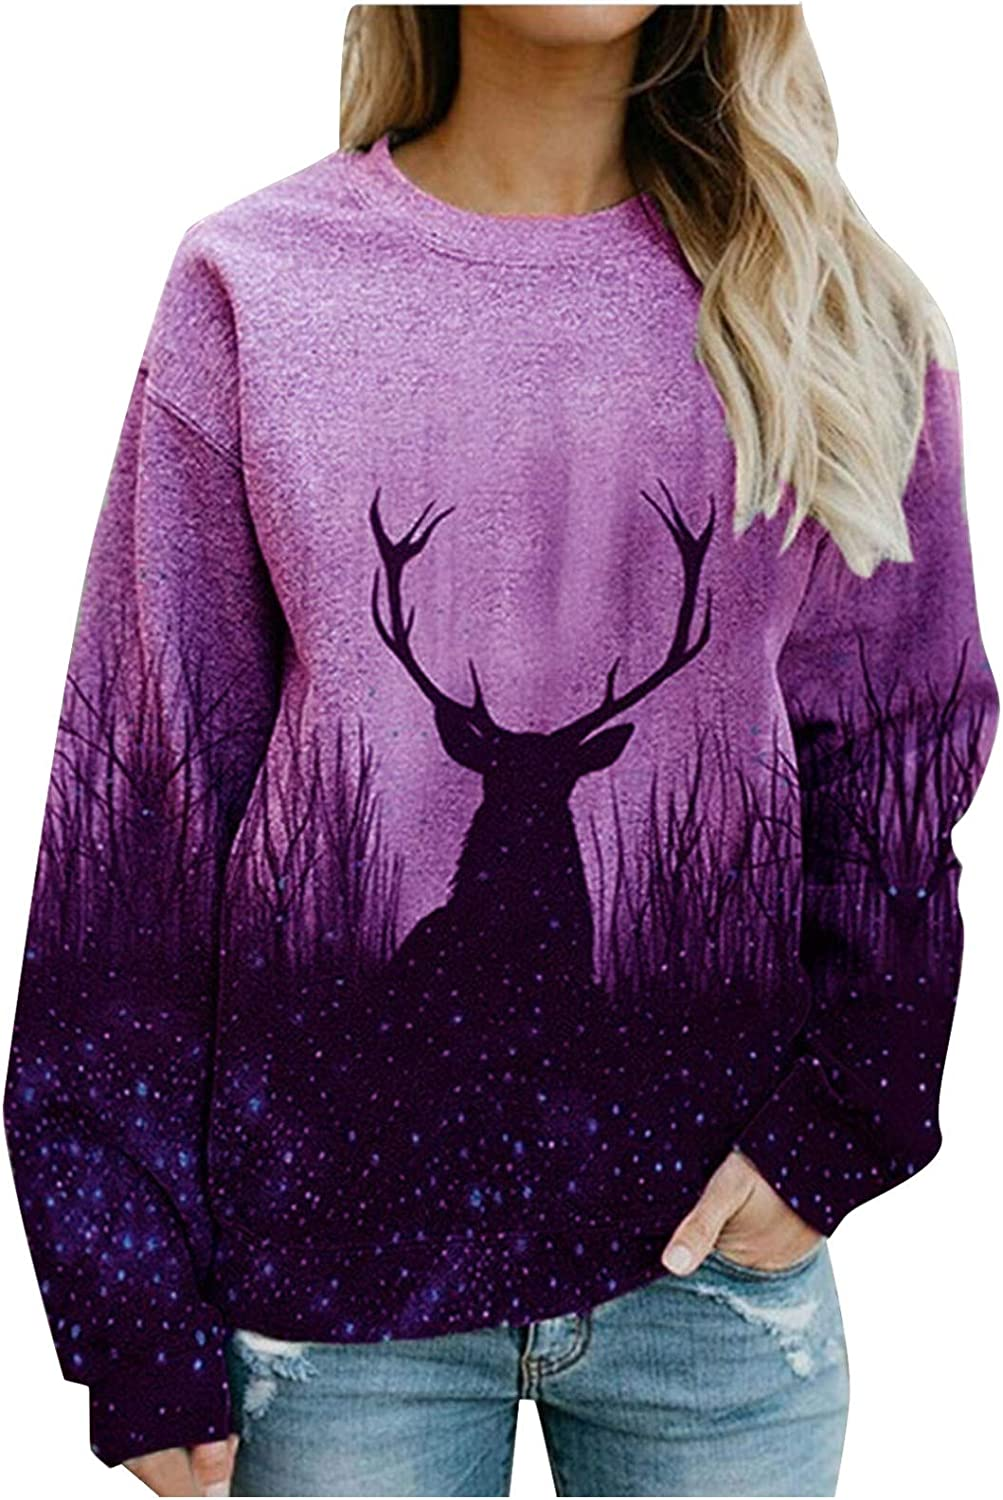 Christmas Pullover for Women Long Sleeve Tops Fashion Round Neck Blouse Animals Graphic Sweatshirt